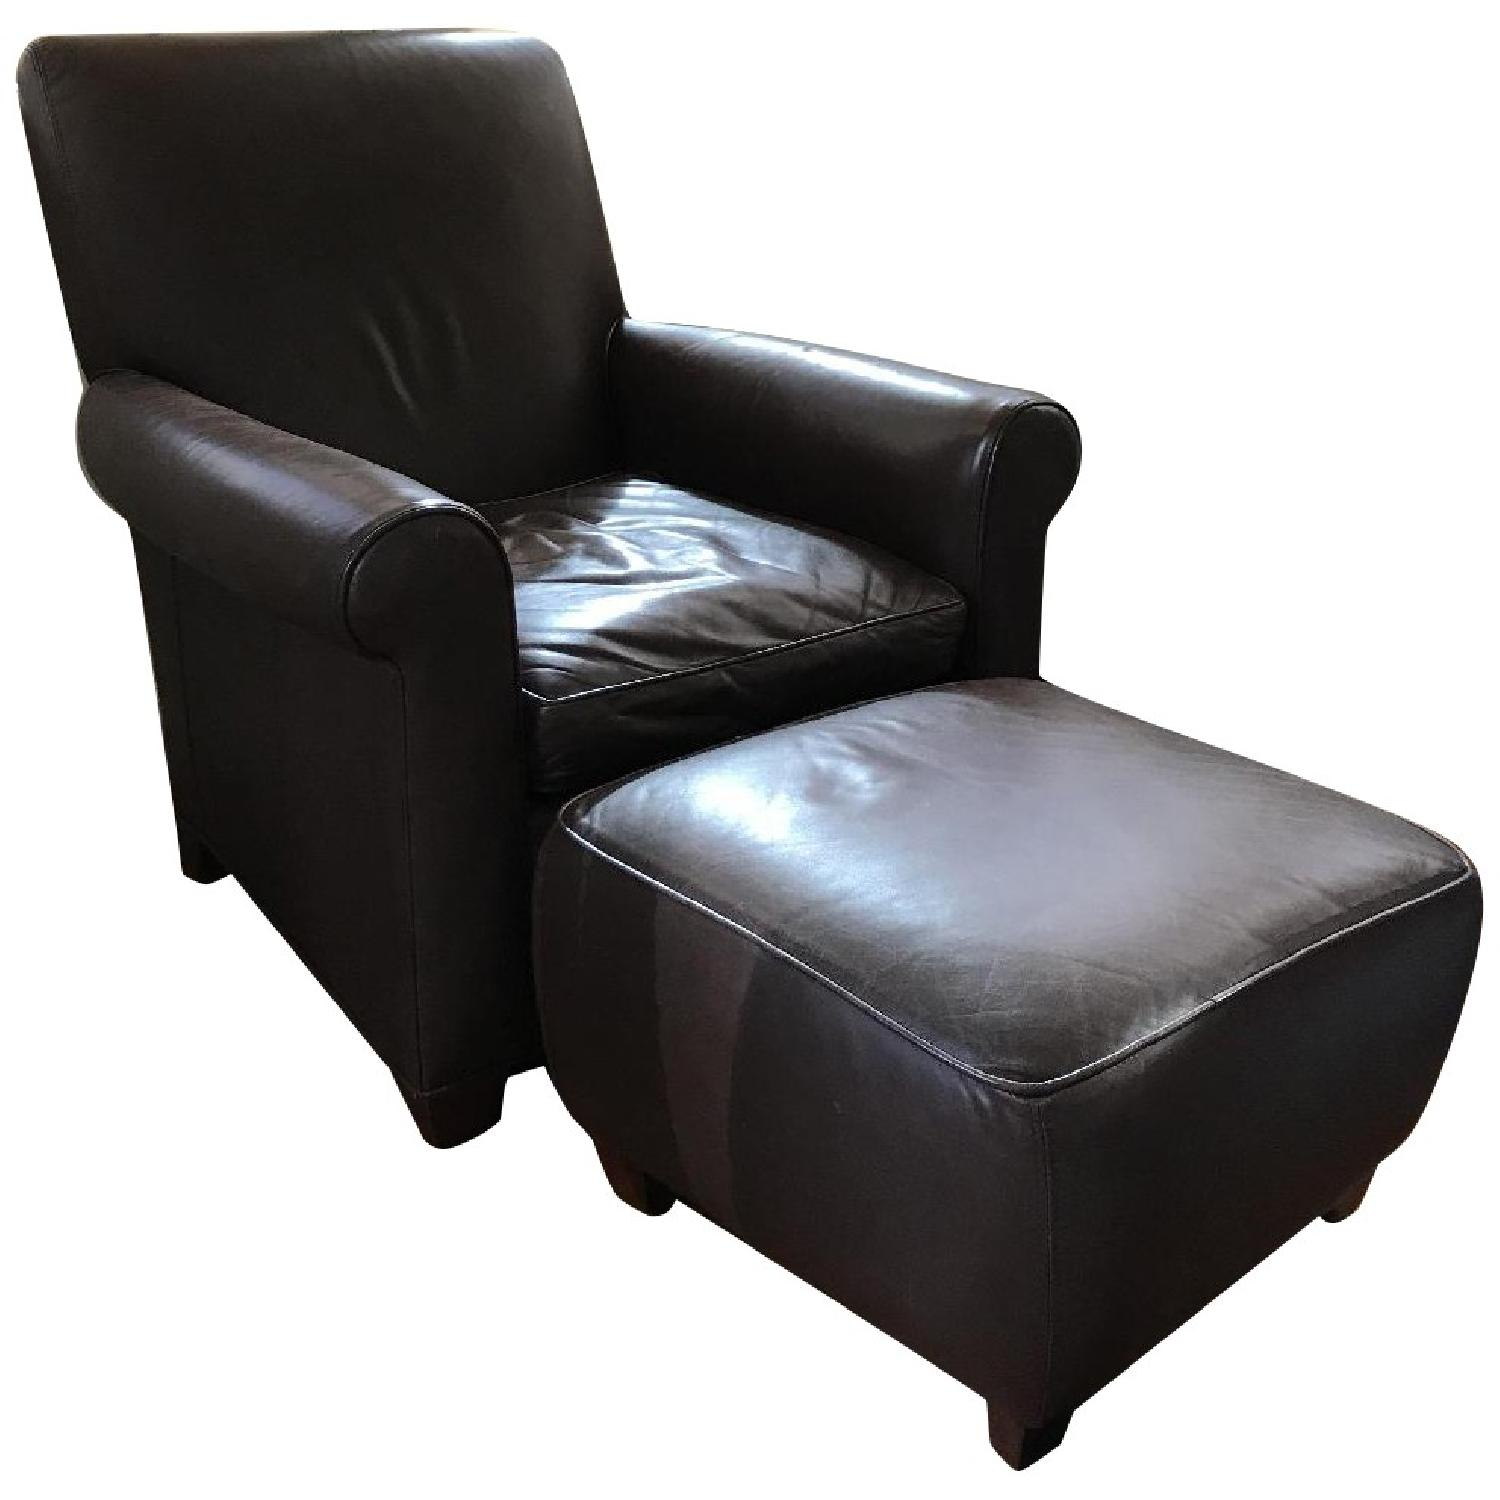 Crate & Barrel Leather Club Chair & Ottoman - image-0